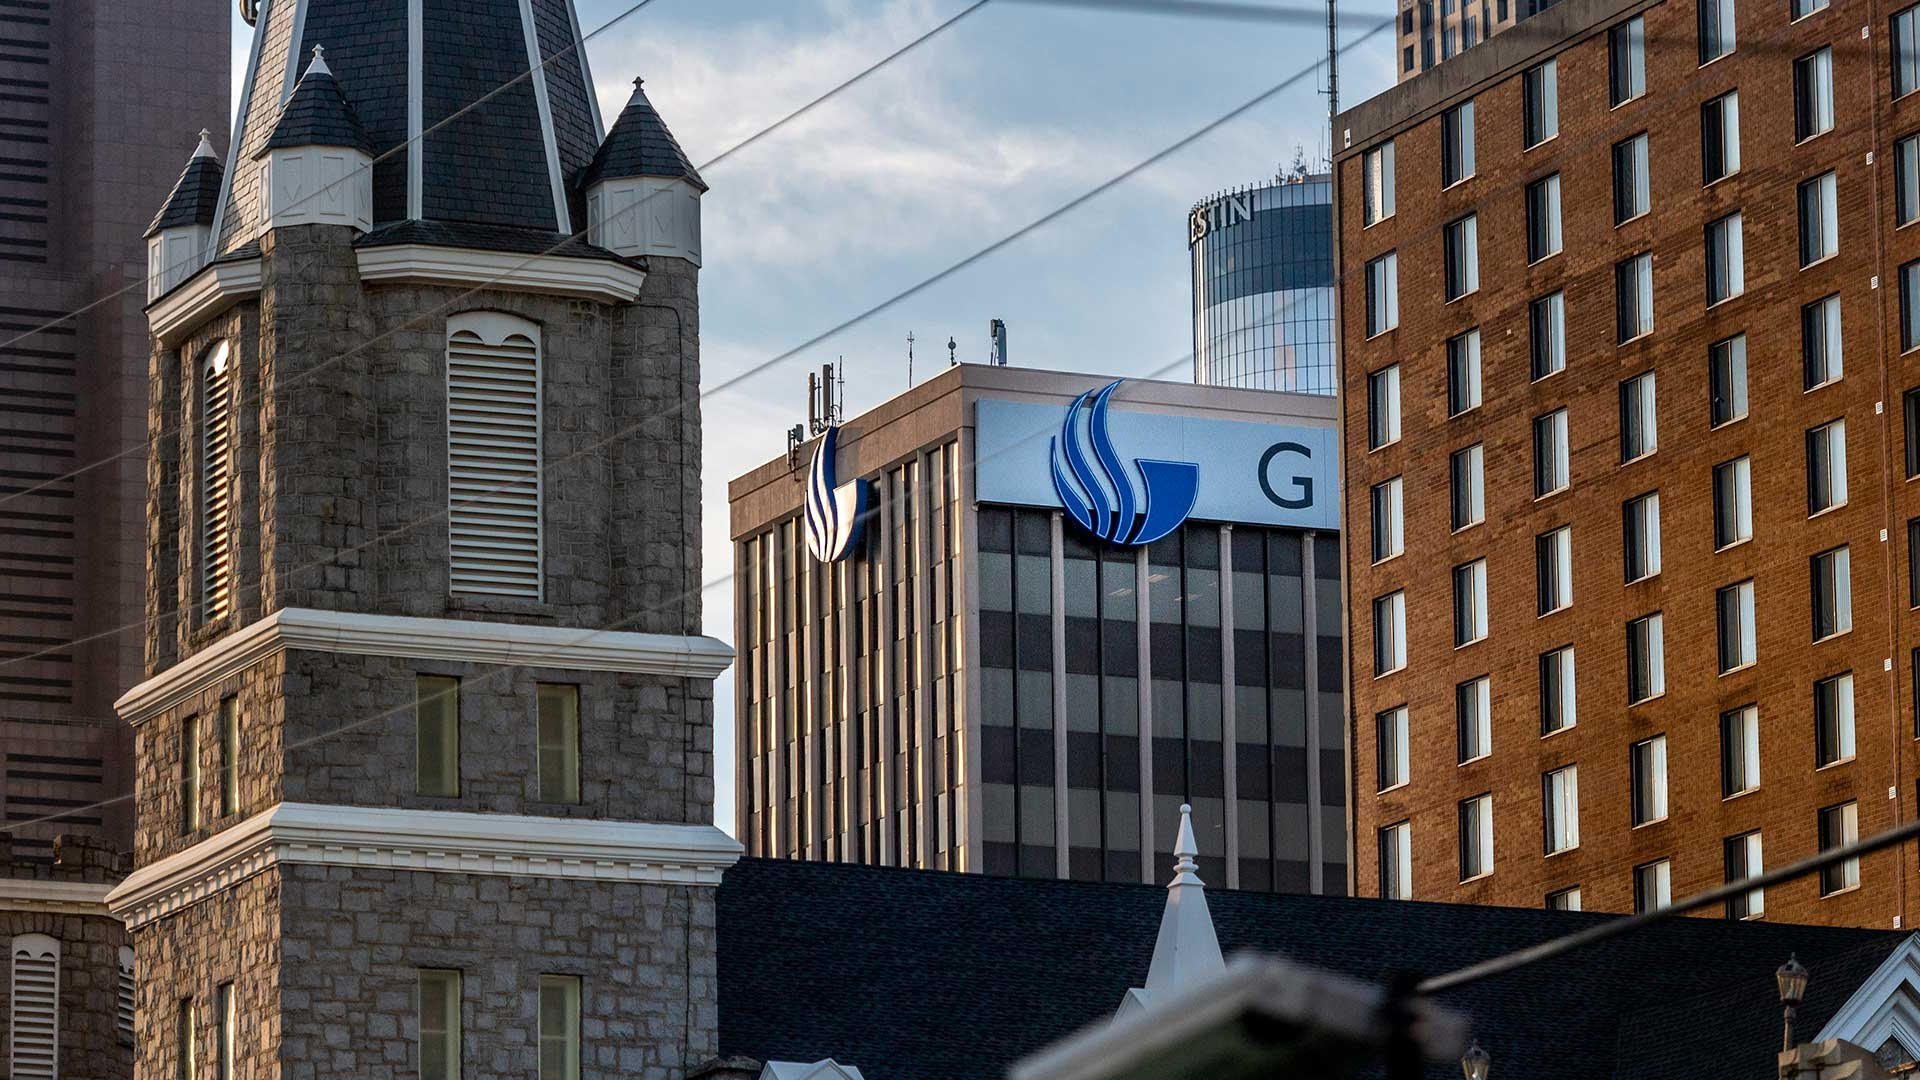 Downtown building tops with Georgia State flame on side of one